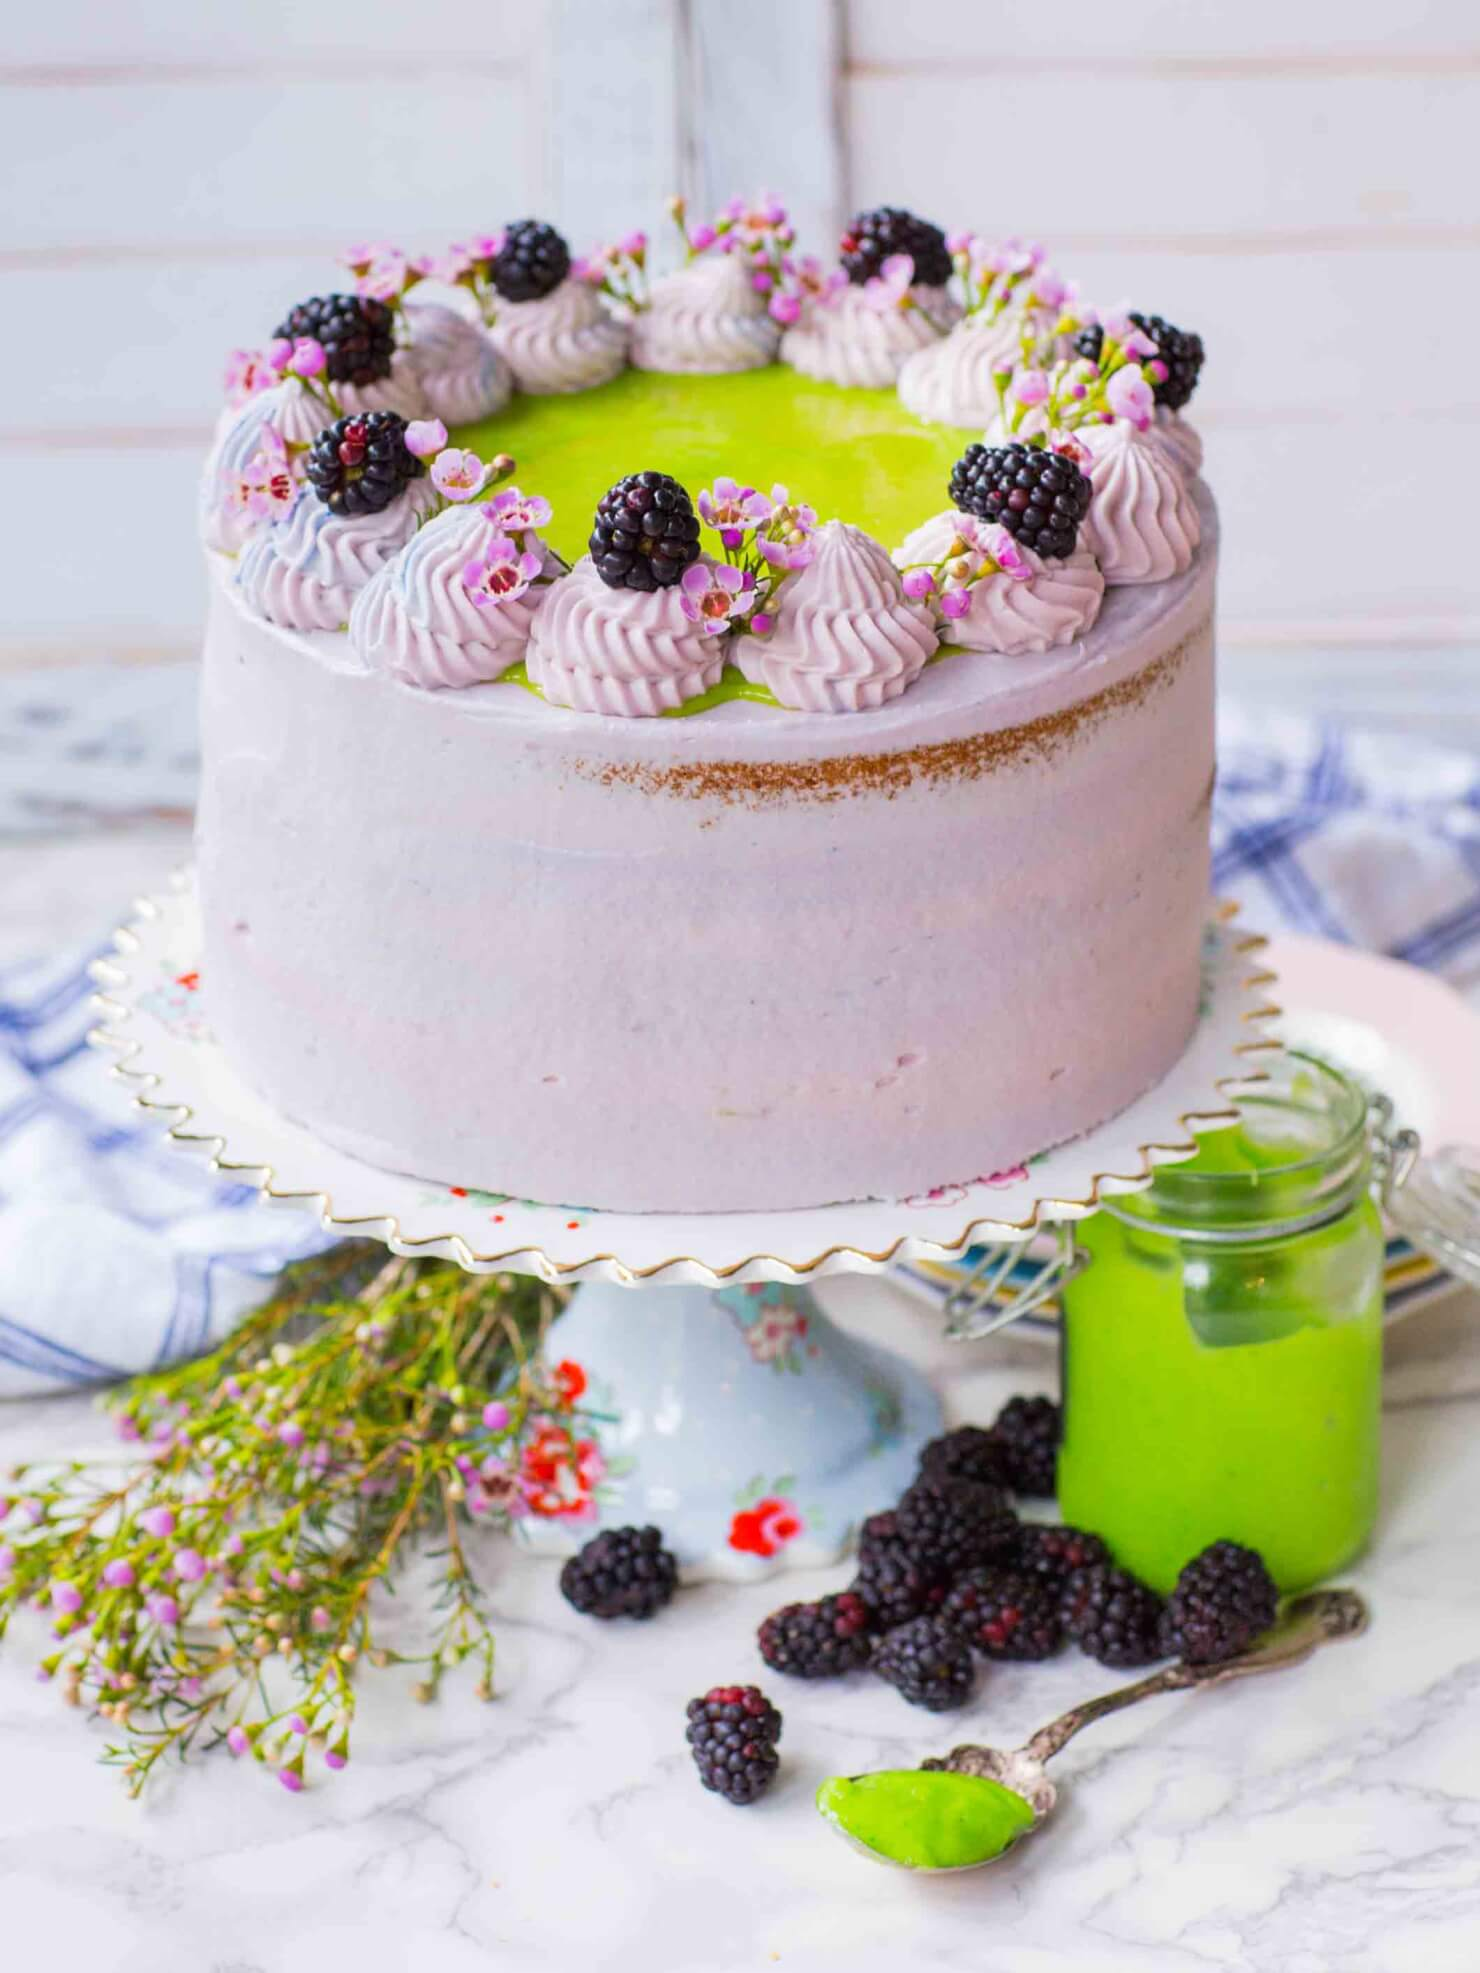 Blackberry Lime Cake with blackberries